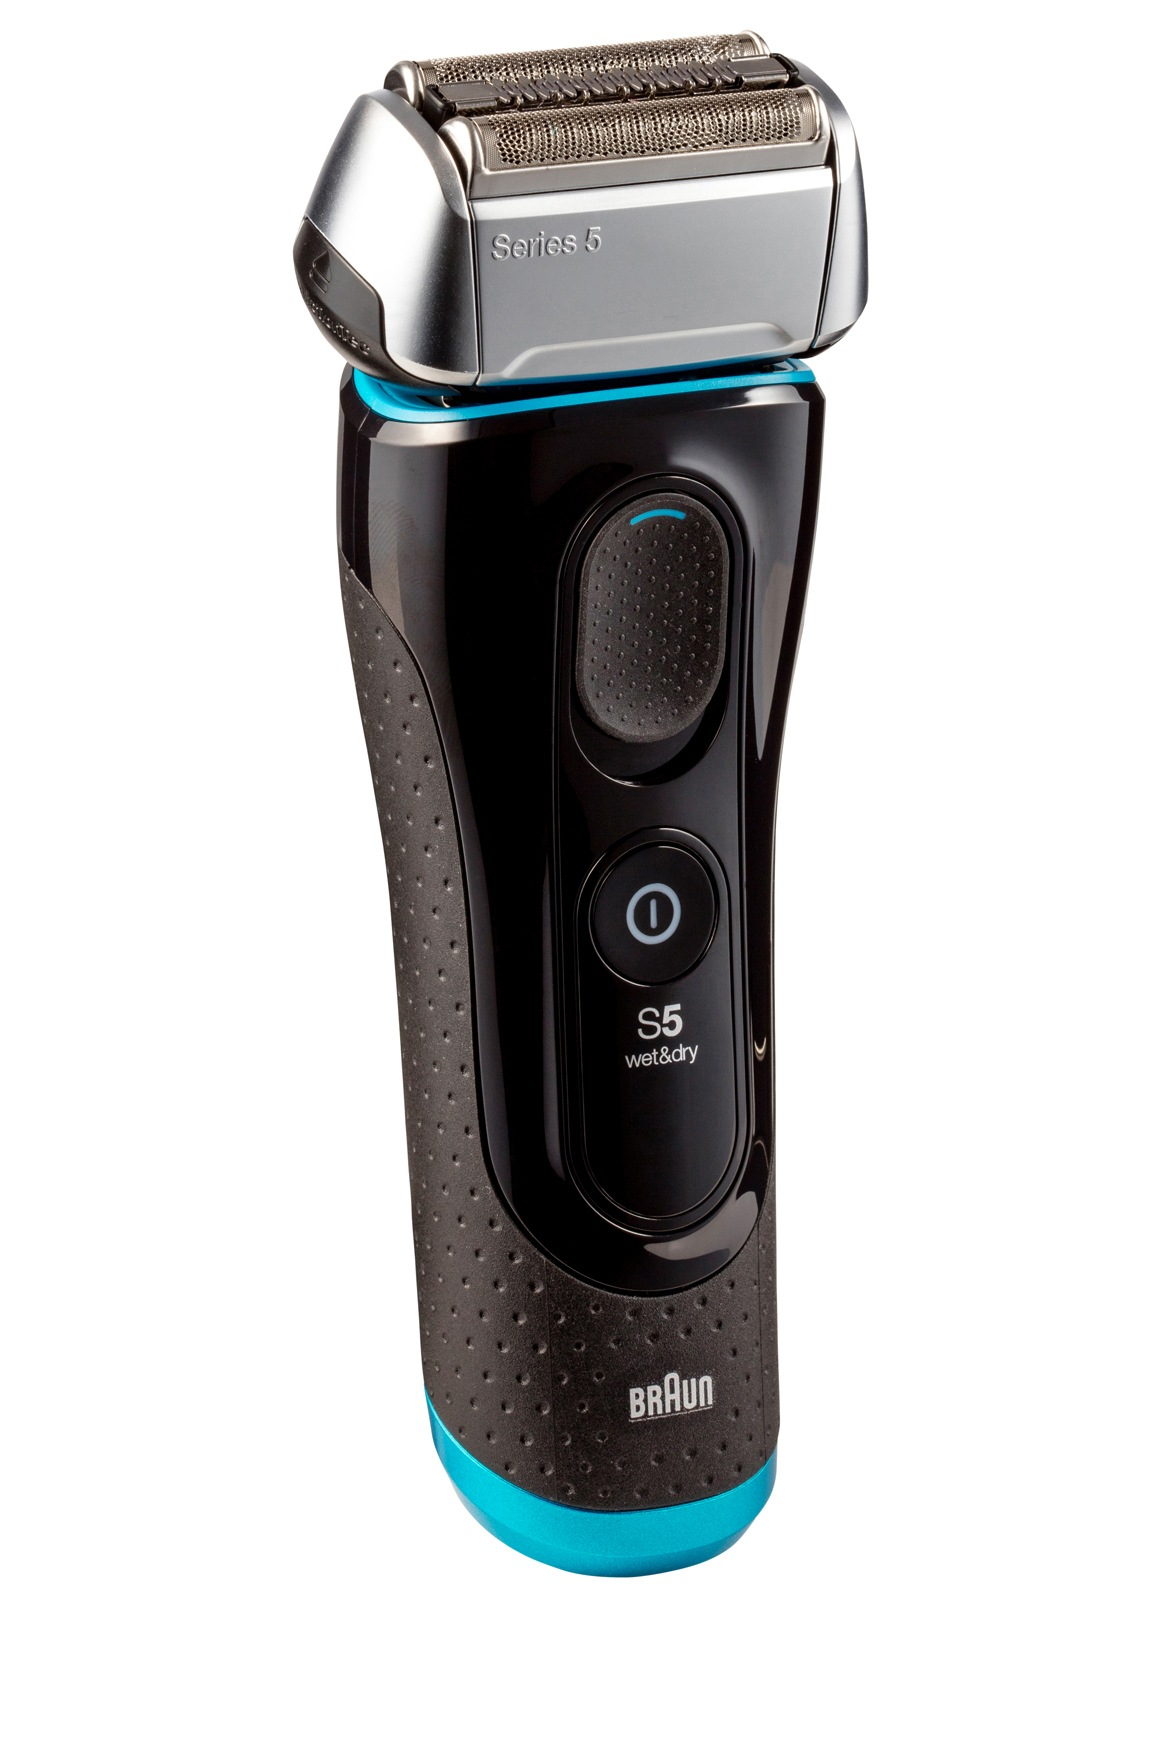 braun series 5 mens electric foil shaver with clean. Black Bedroom Furniture Sets. Home Design Ideas